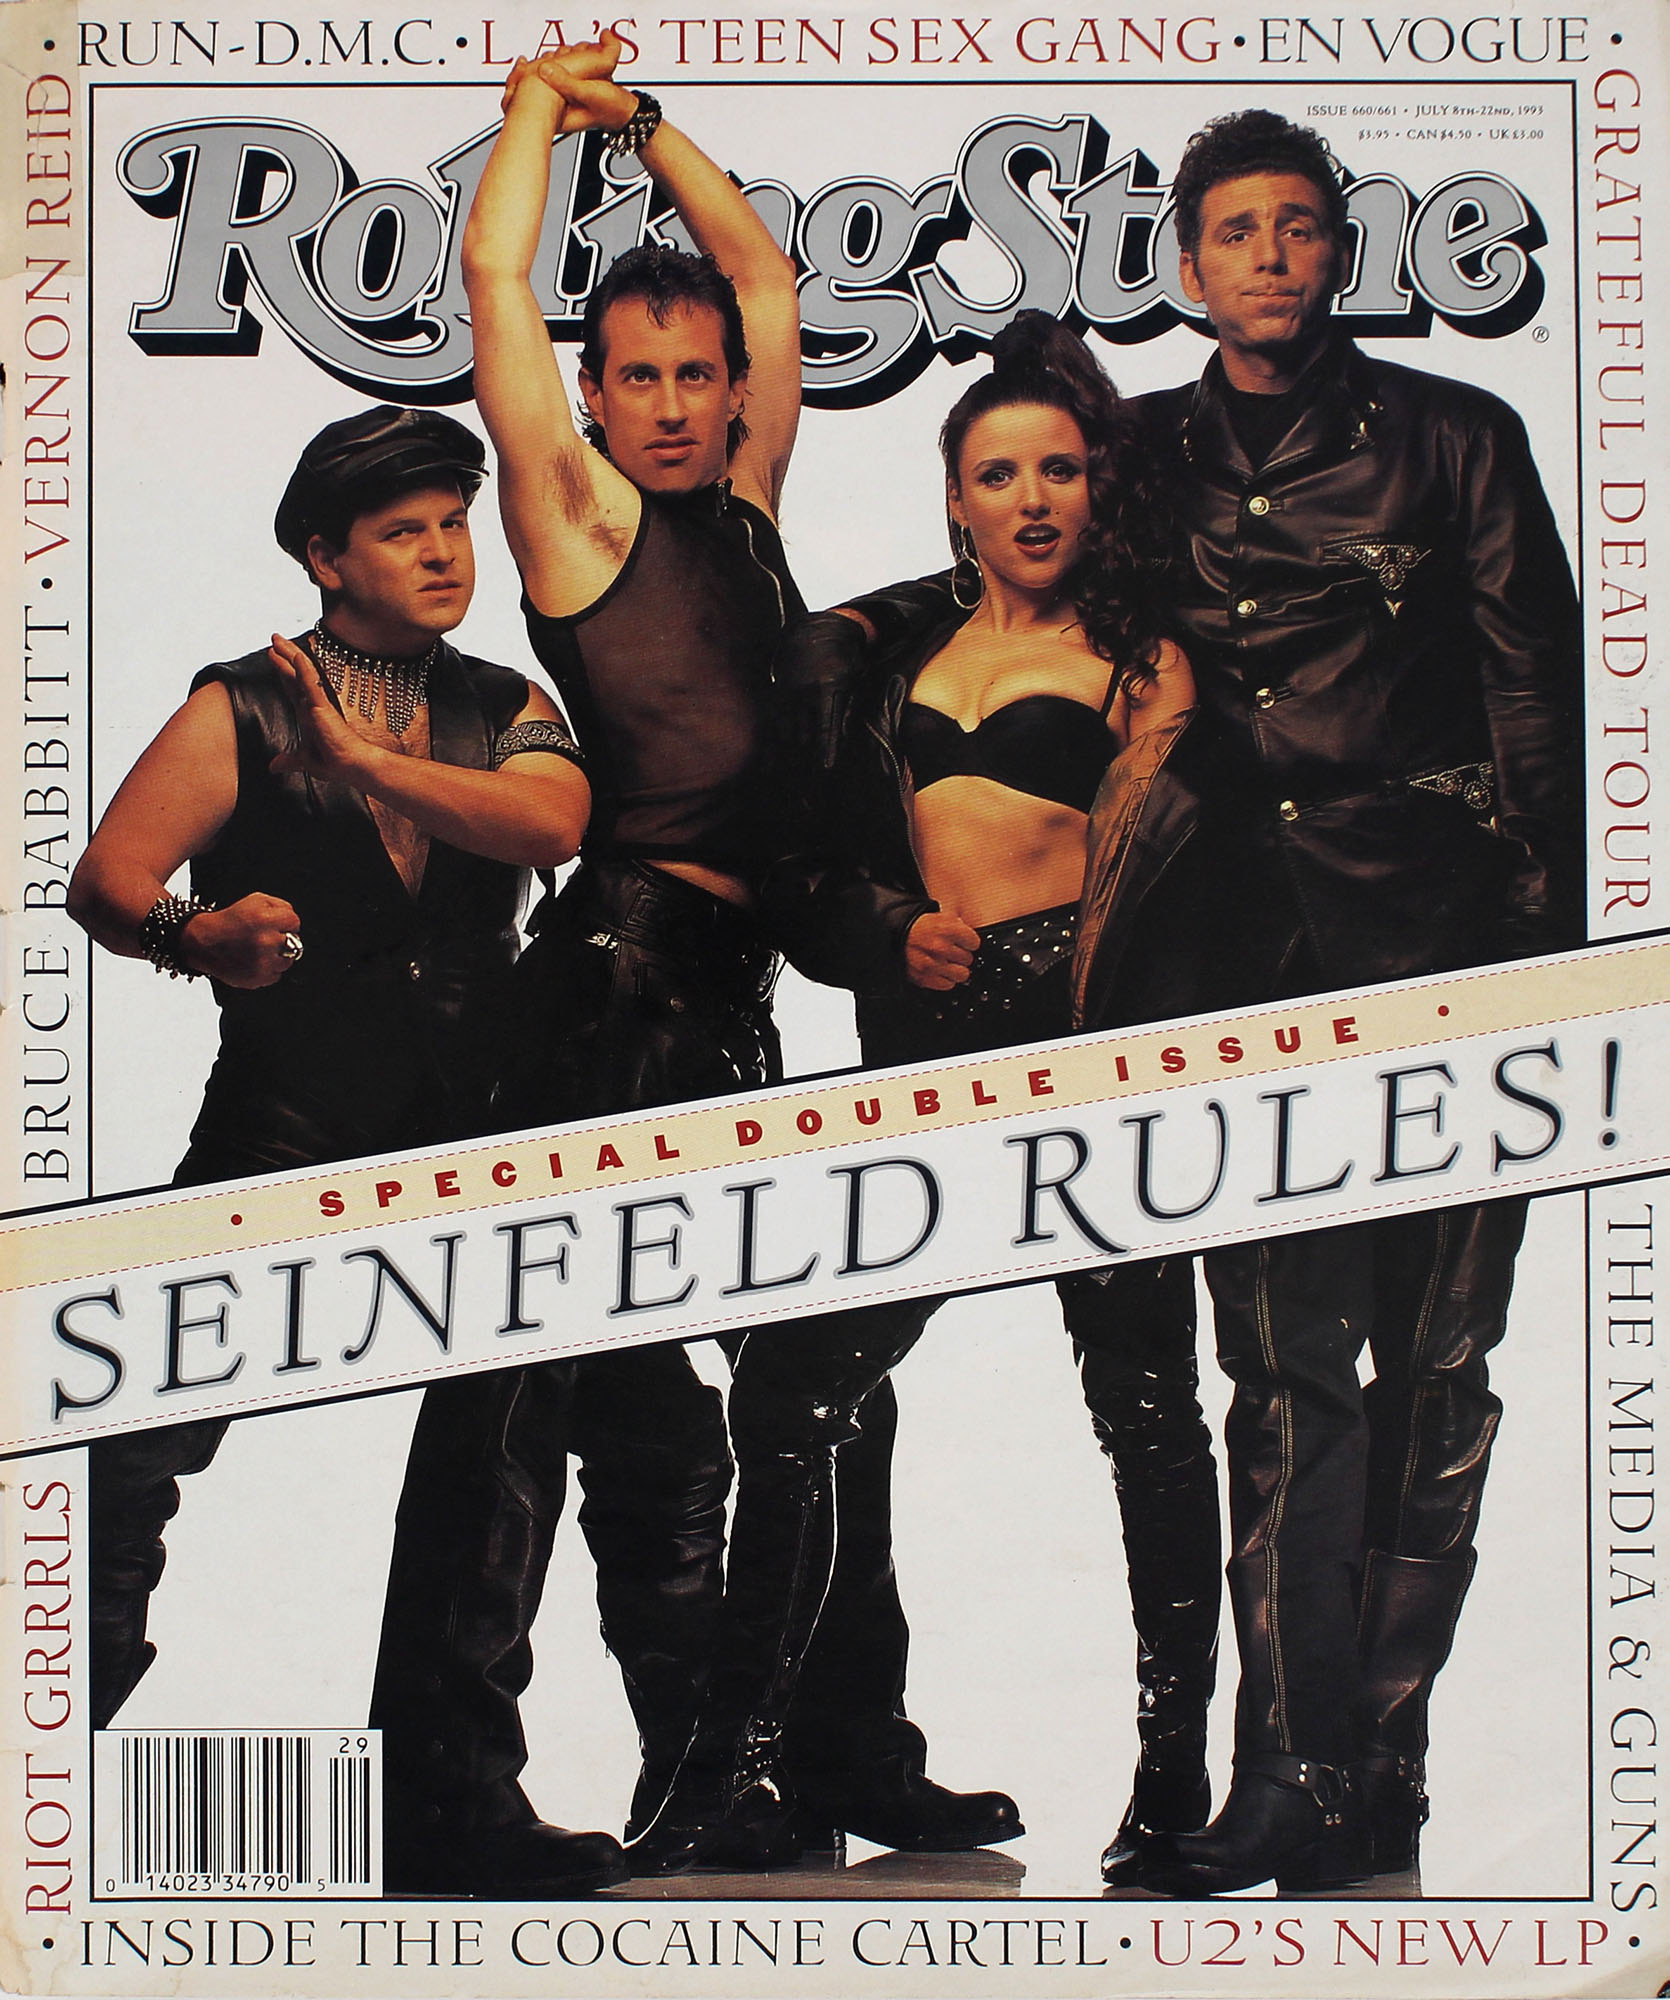 Rolling Stone Issue 660/661